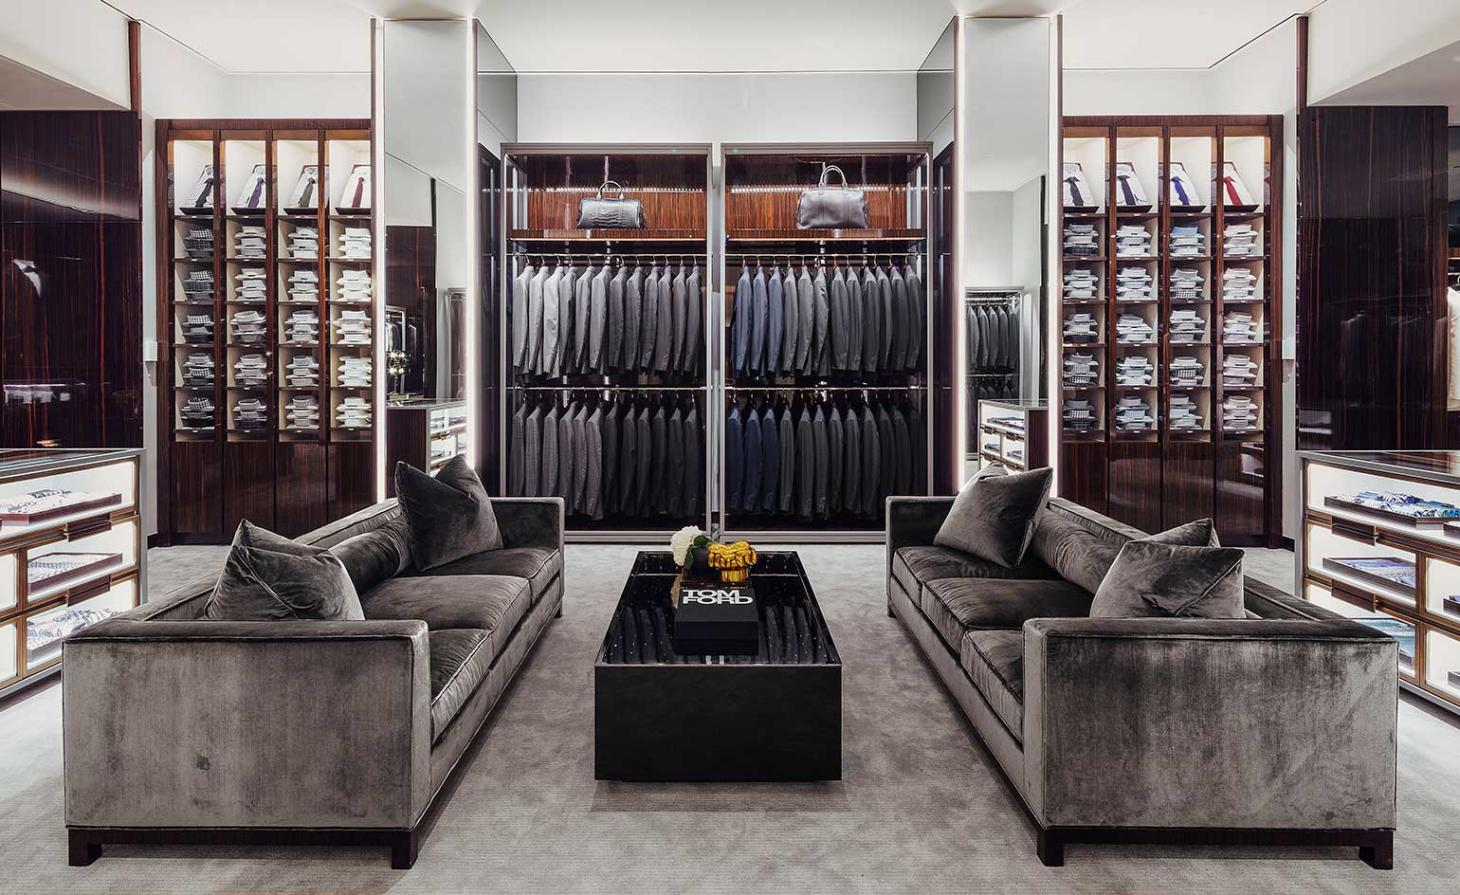 Inside the Tom Ford Miami store